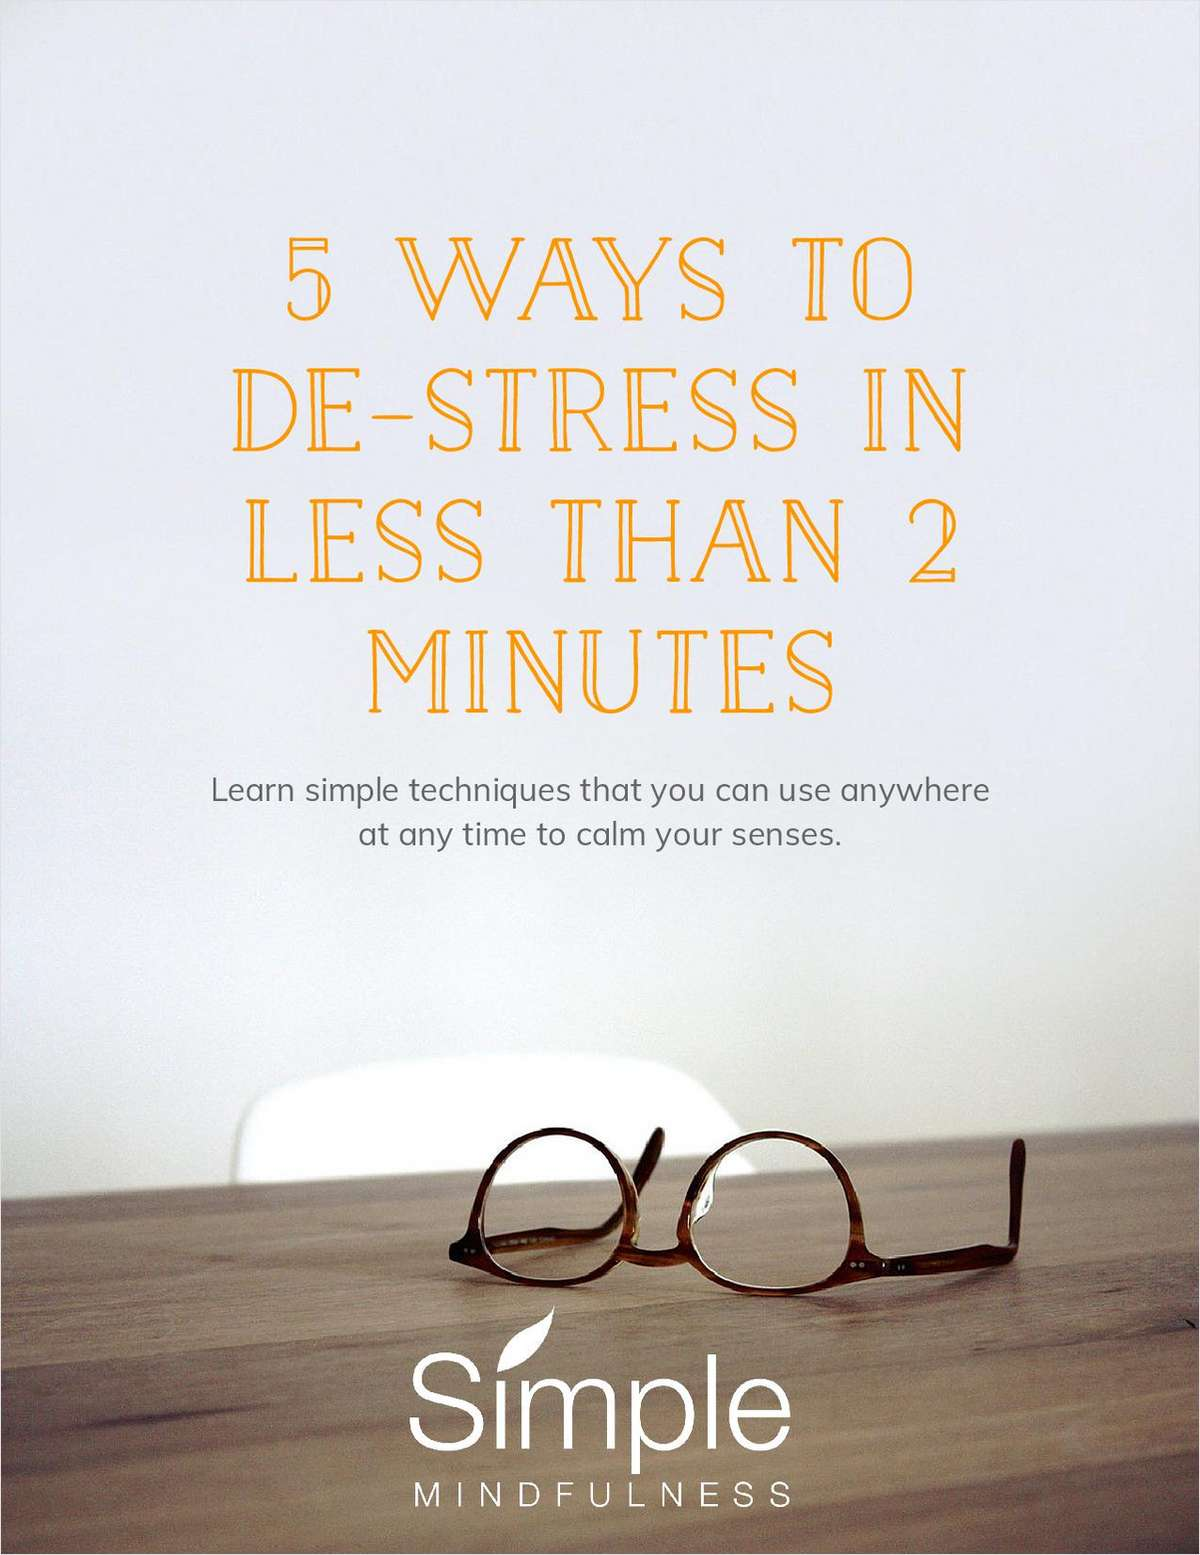 5 Ways to De-Stress in Less than 2 Minutes